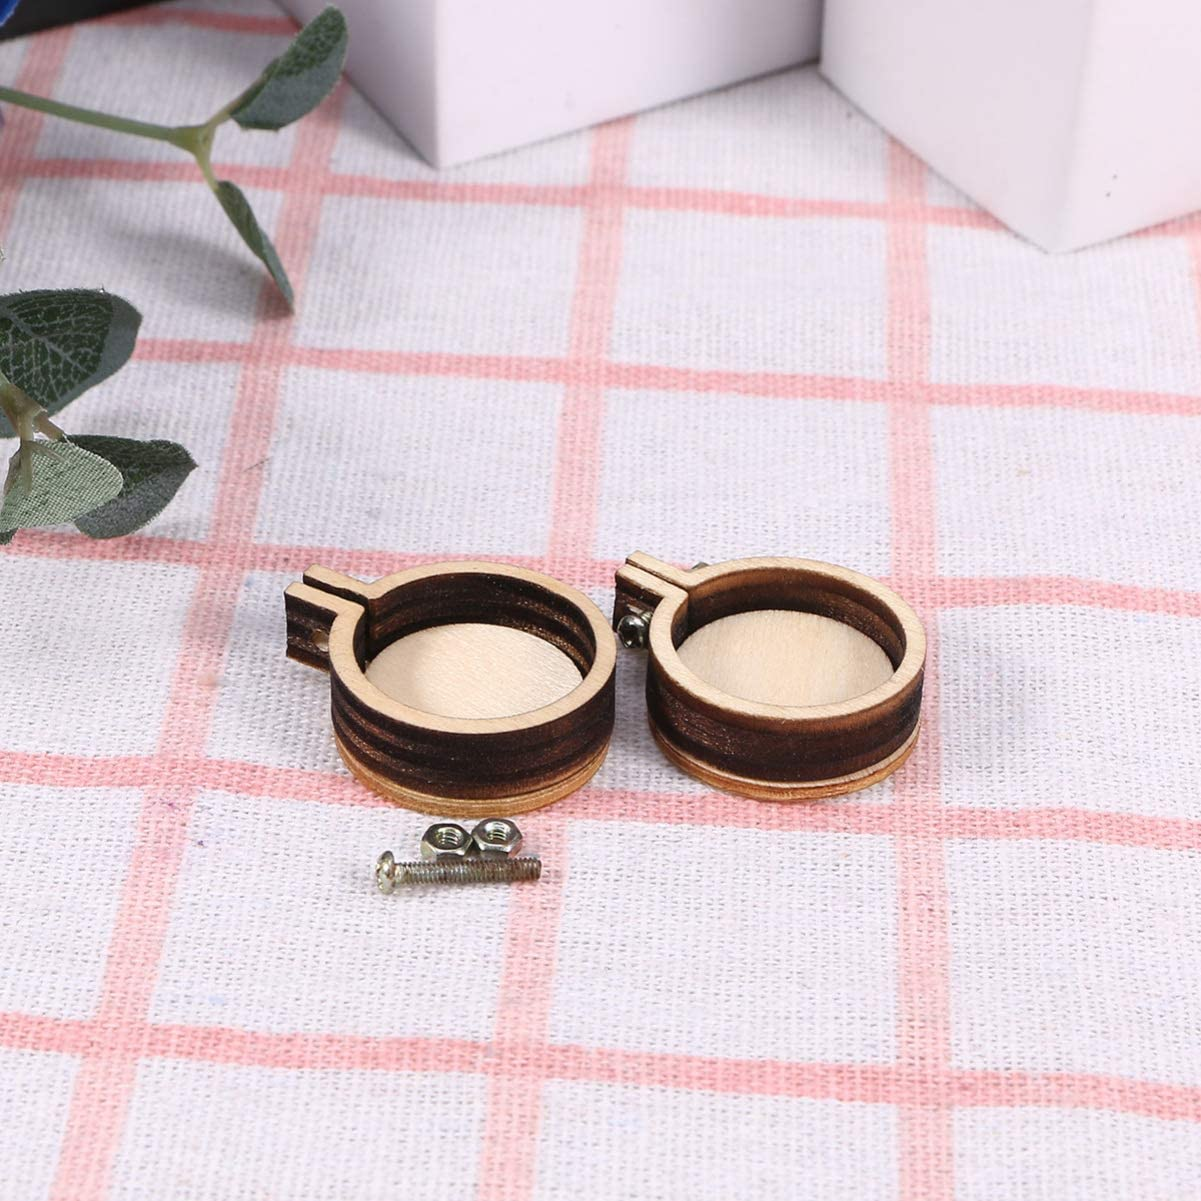 SUPVOX 10pcs Embroidery Hoop Mini Round Cross Stitch Hoop Ring Imitated Wood Display Frame for Art Craft Handy Sewing and Hanging